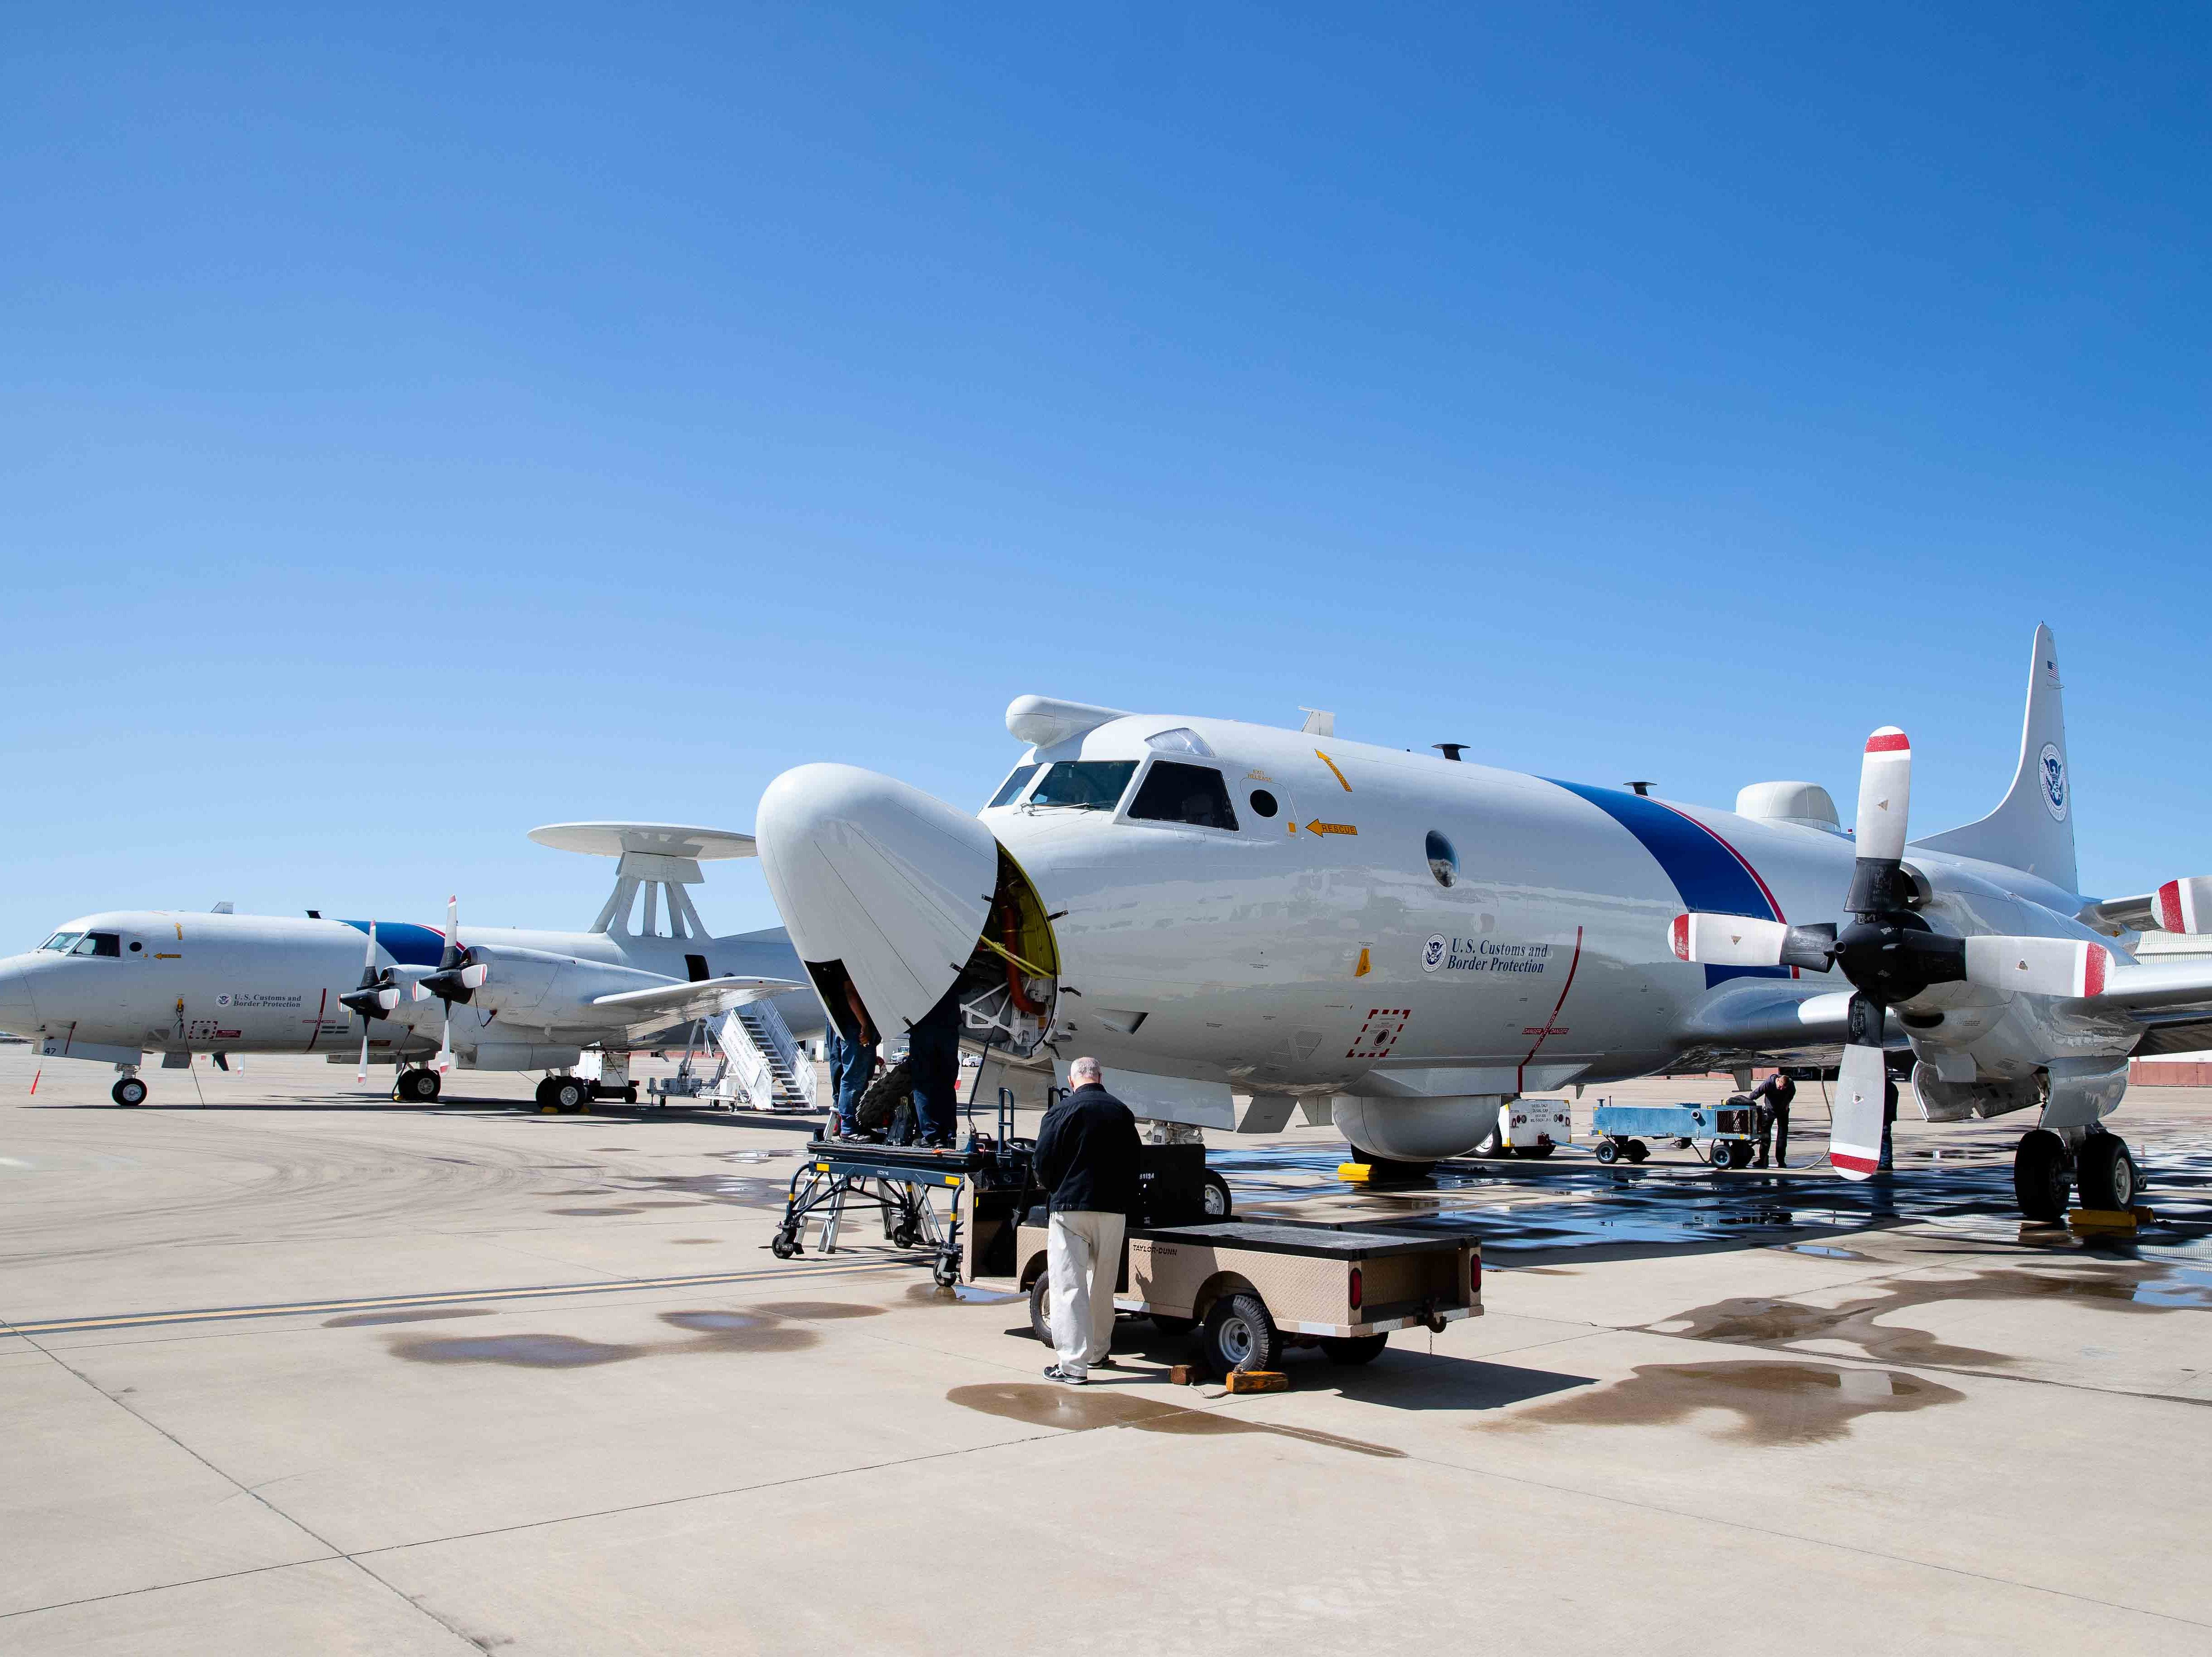 Customs and Border Protection's P-3 Orion aircrafts at their National Air Security Operations Center on Navy Air Station Corpus Christi on Wednesday, Feb. 20, 2019.